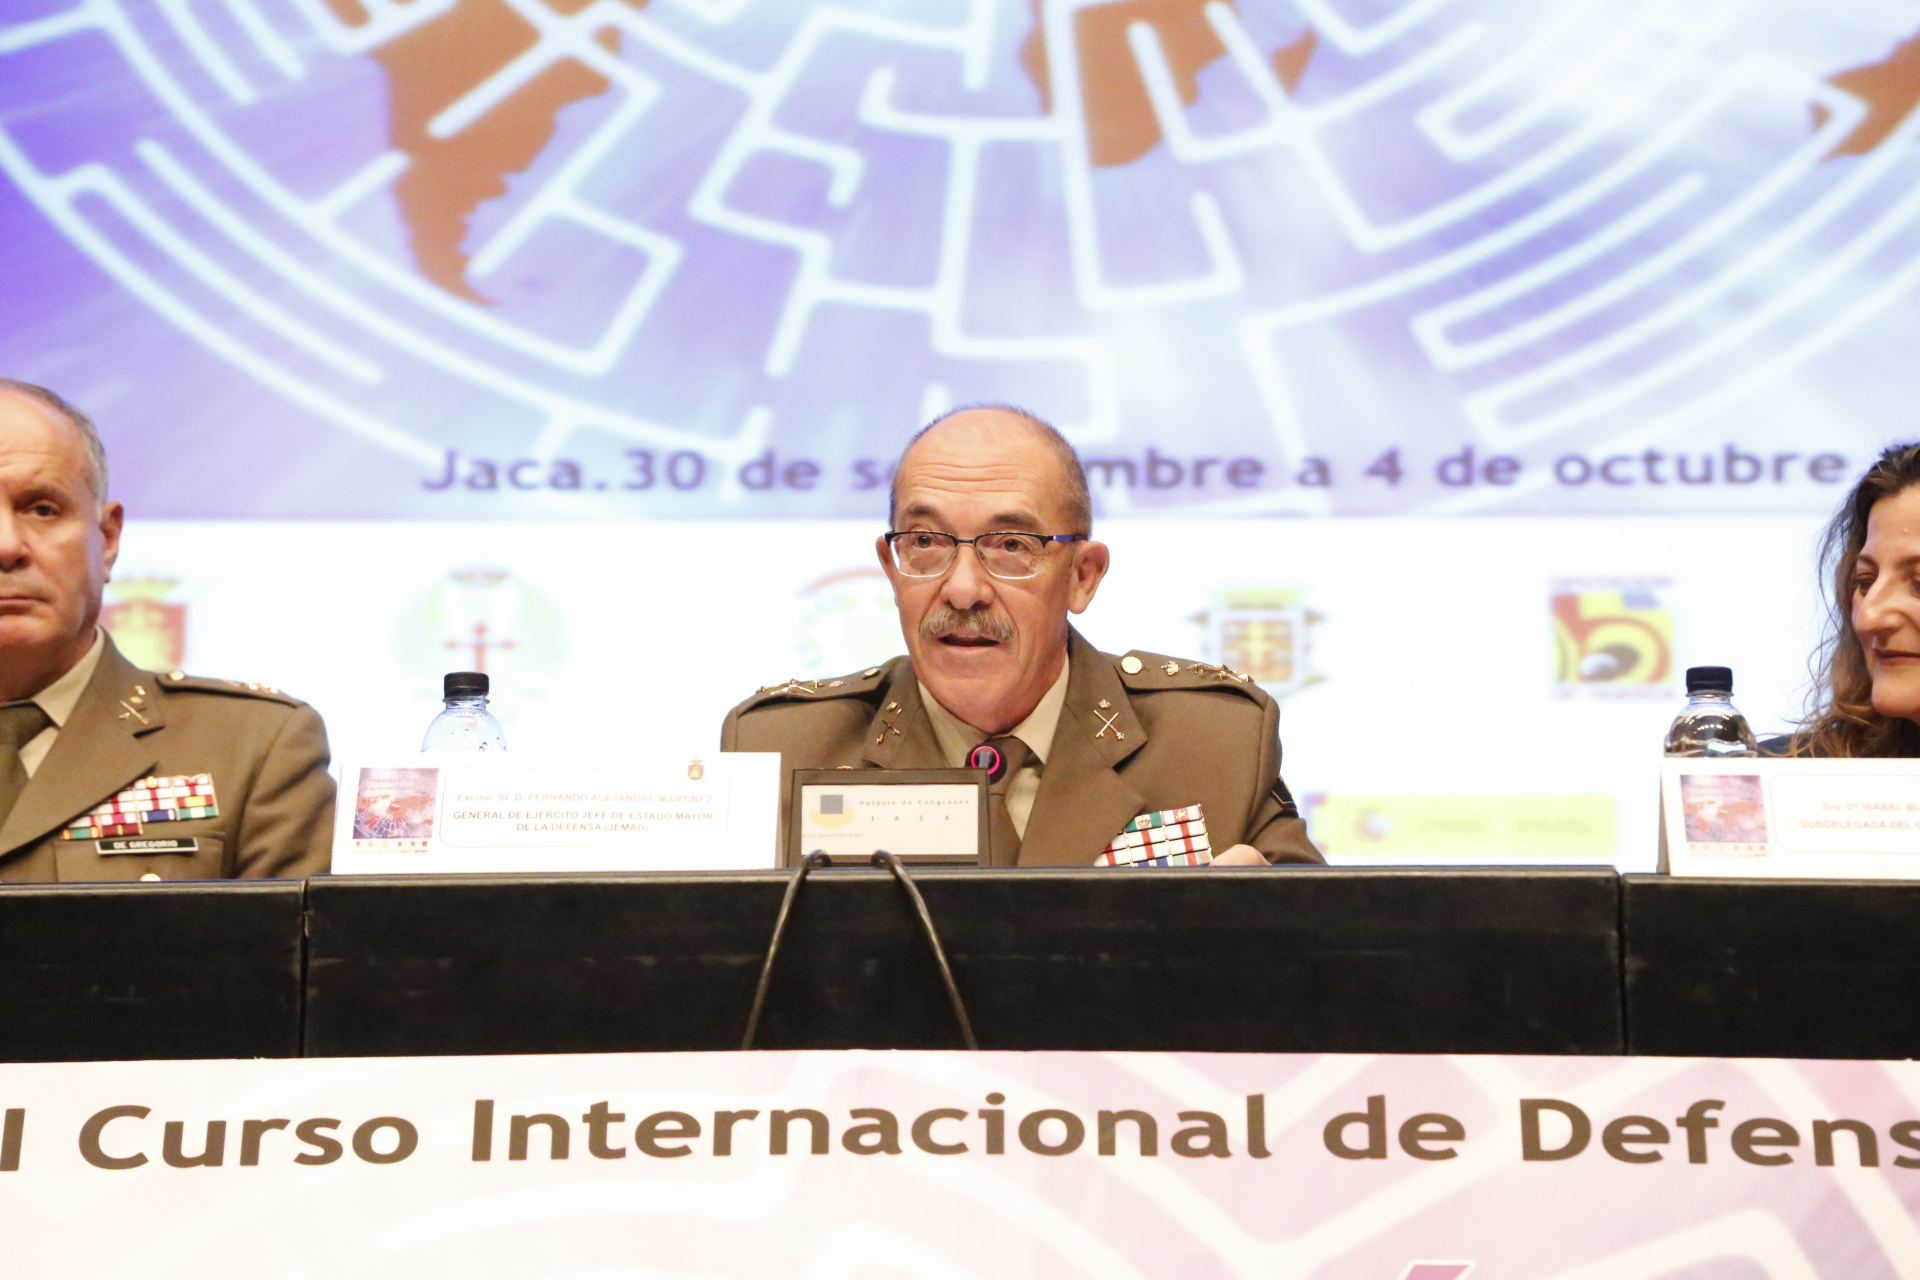 JEMAD closes the 27th International Defence Course in Jaca